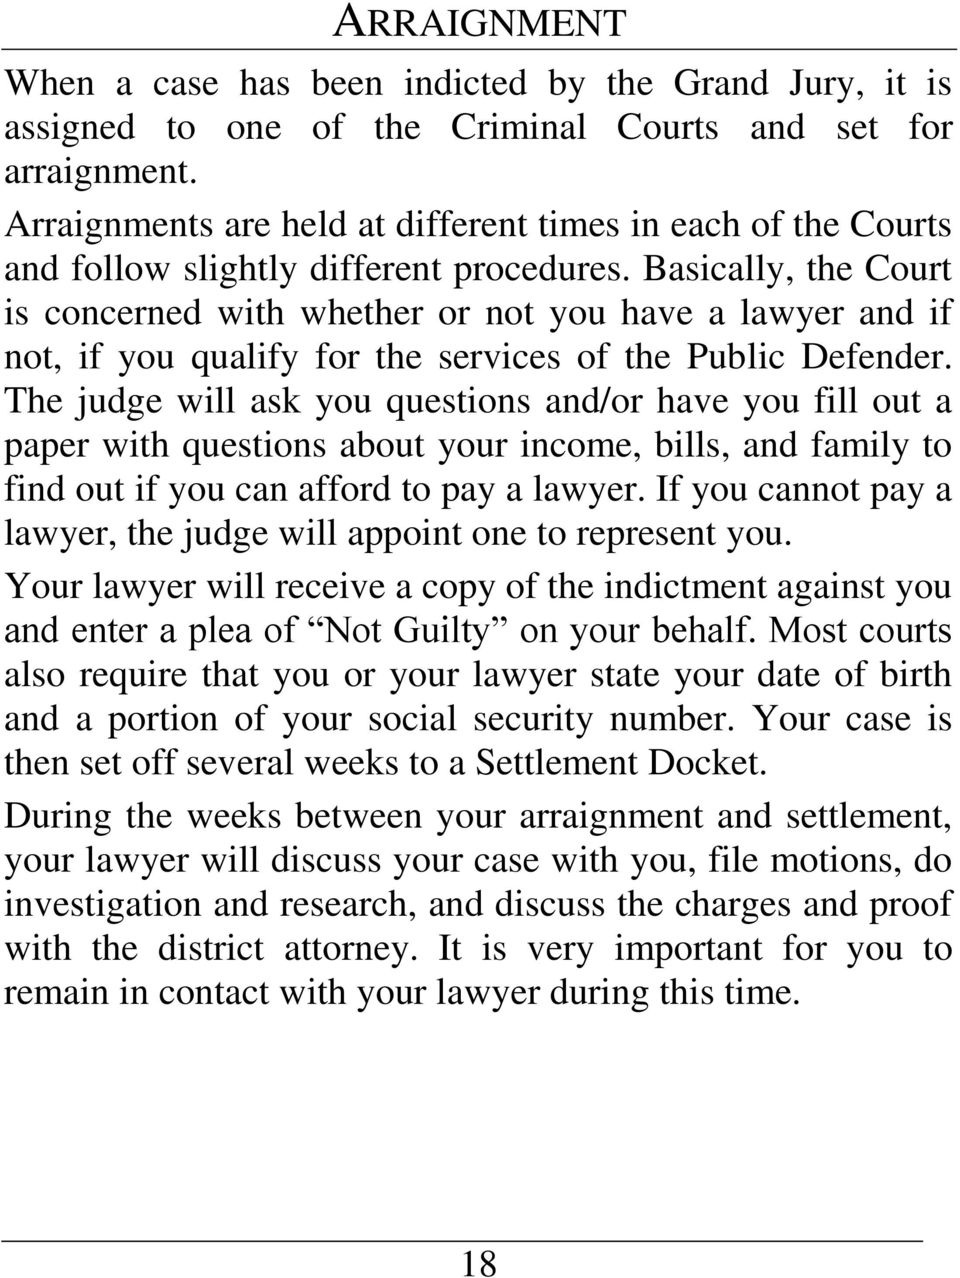 Basically, the Court is concerned with whether or not you have a lawyer and if not, if you qualify for the services of the Public Defender.